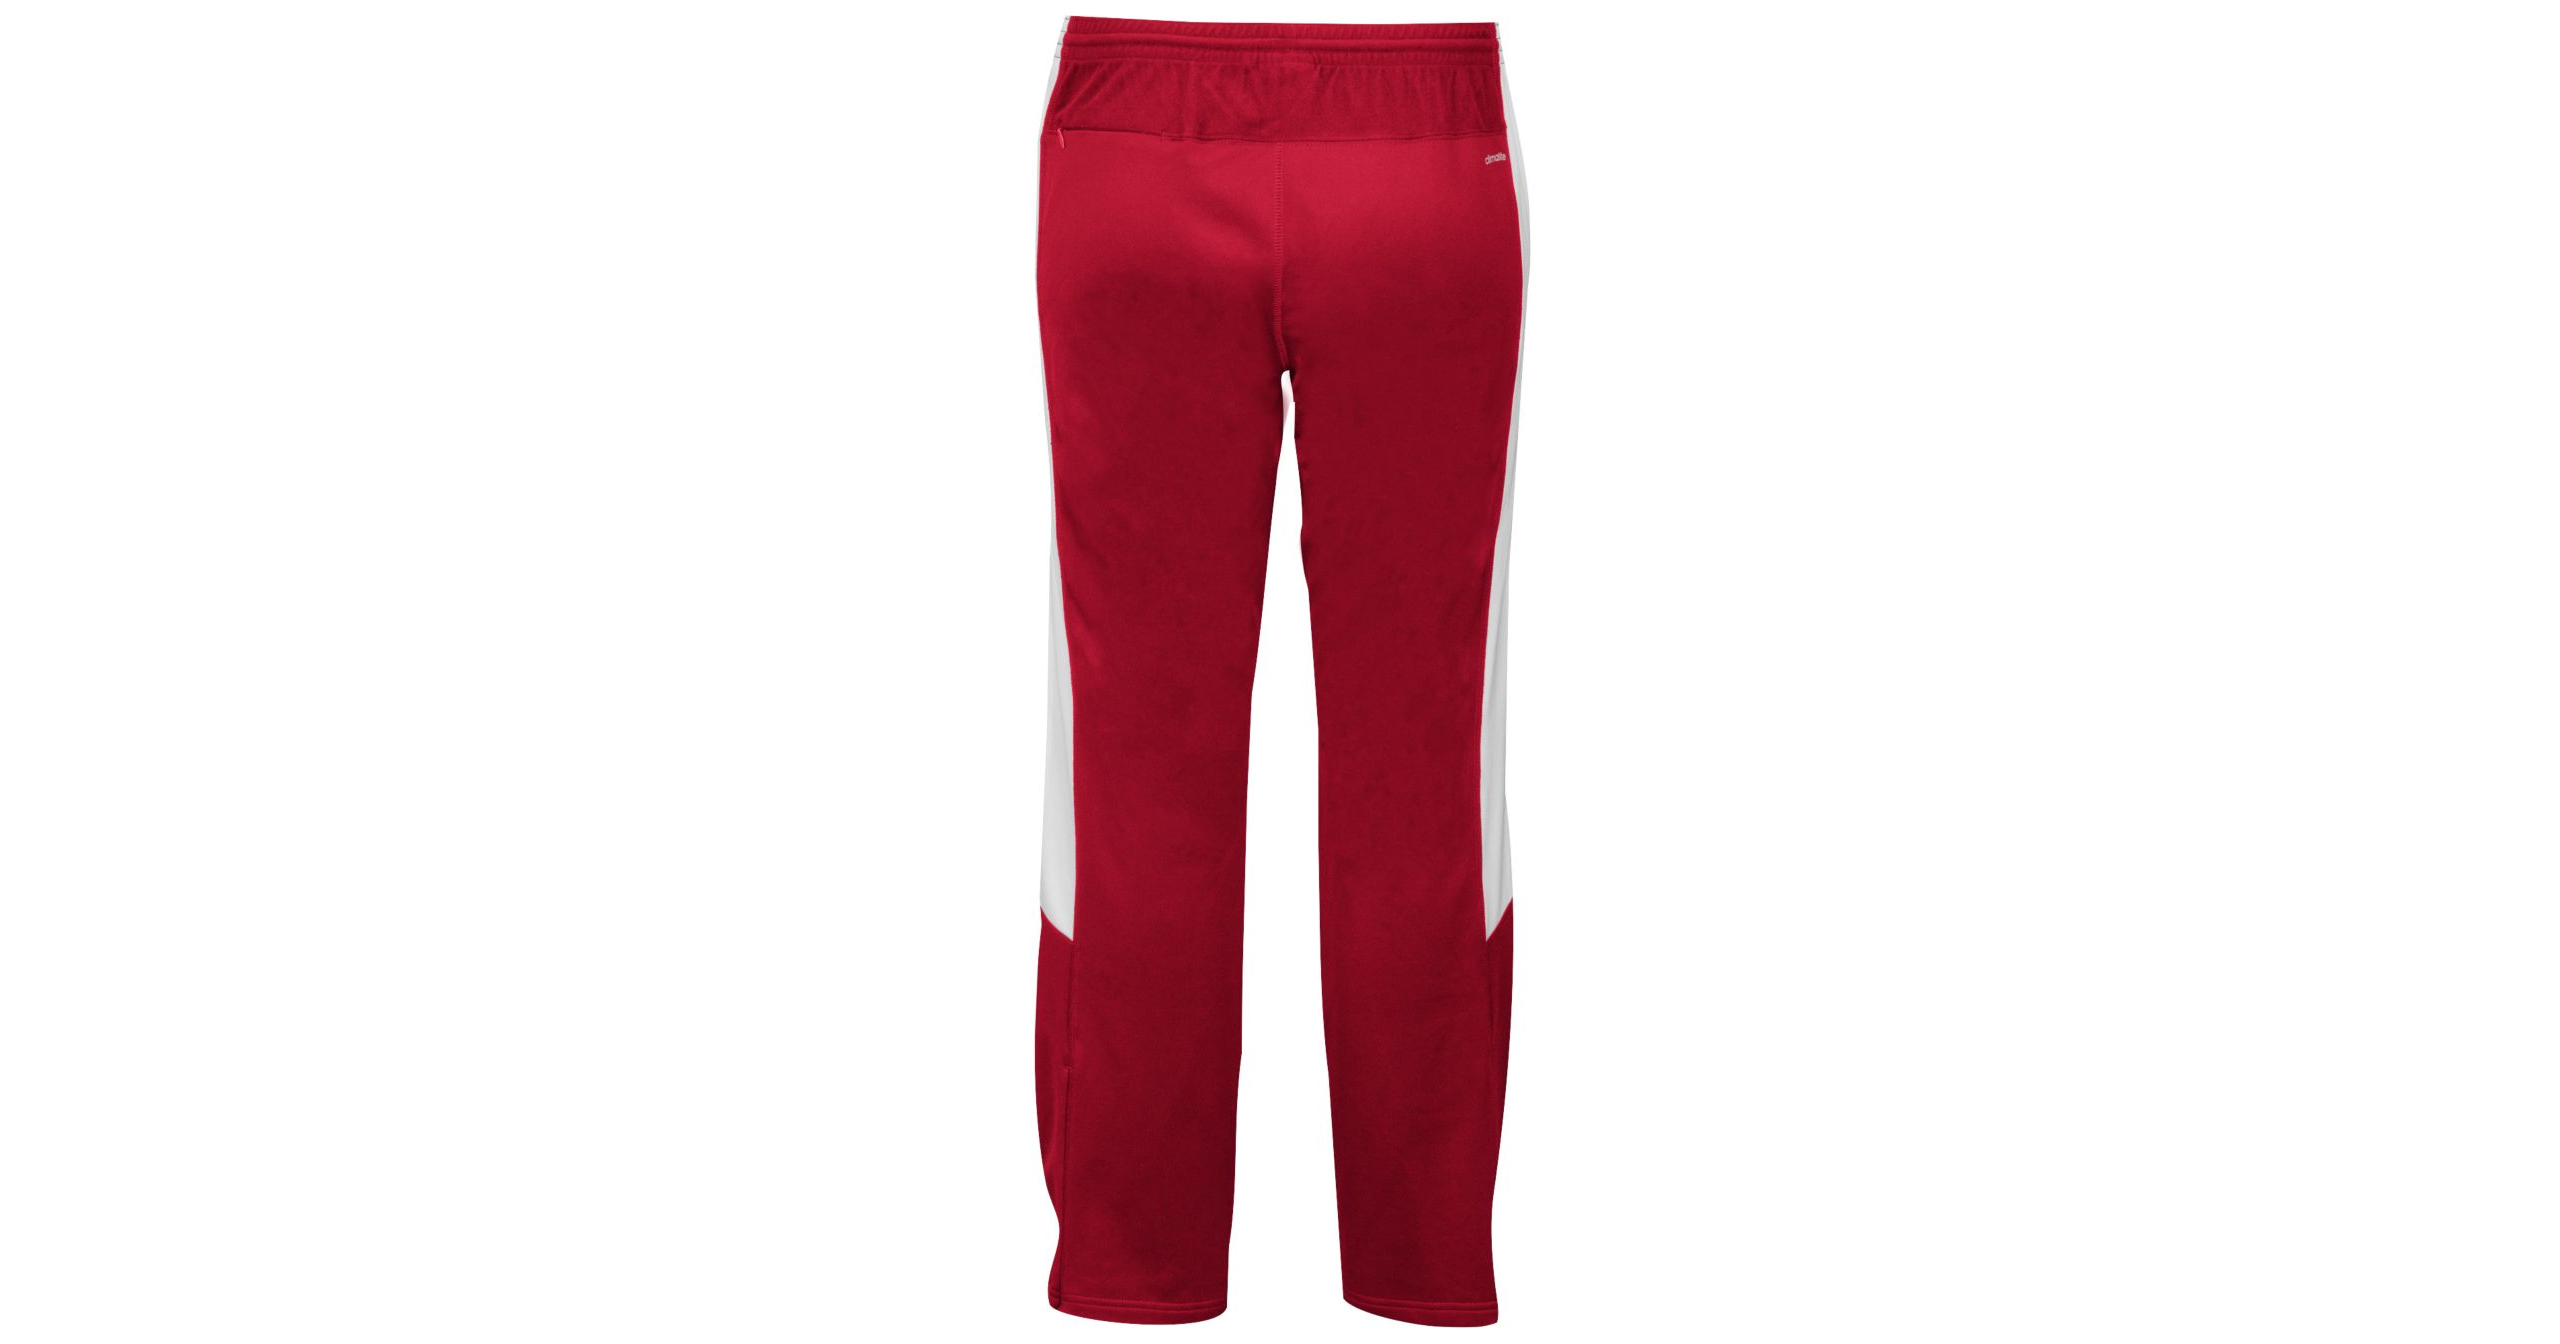 Pants transparent red. Adidas climalite women s